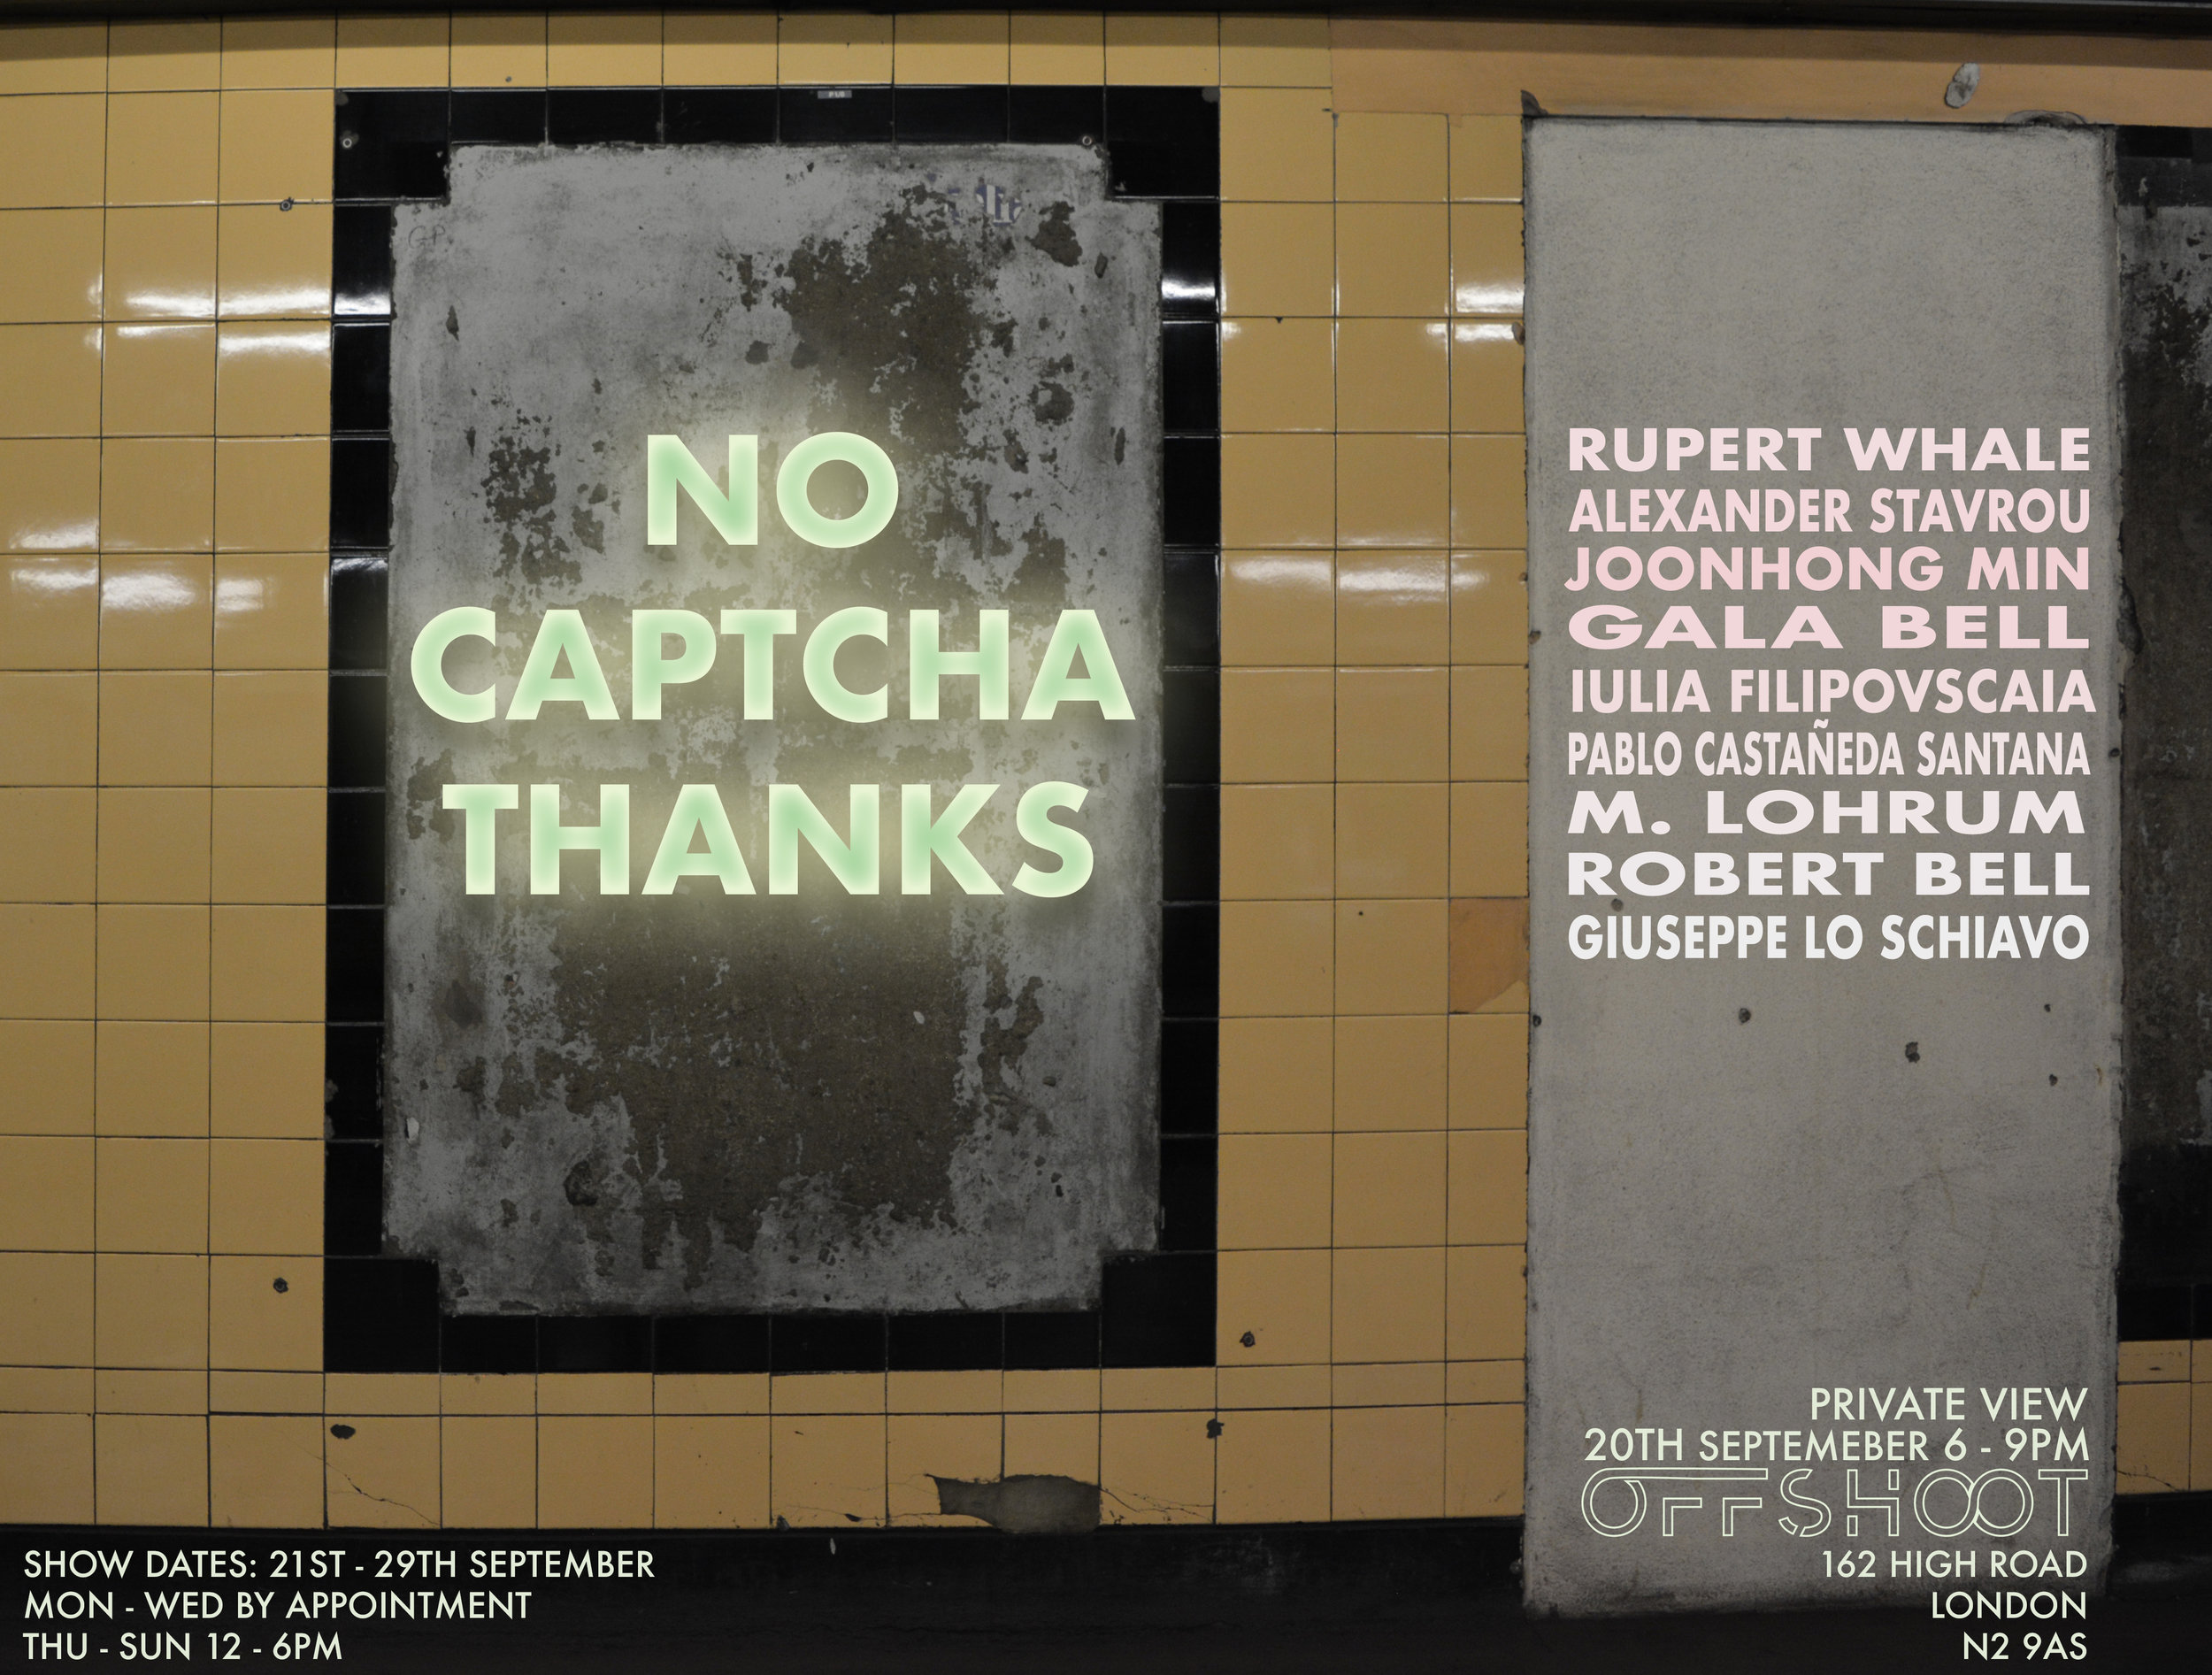 No Captcha Thanks - Offshoot Gallery